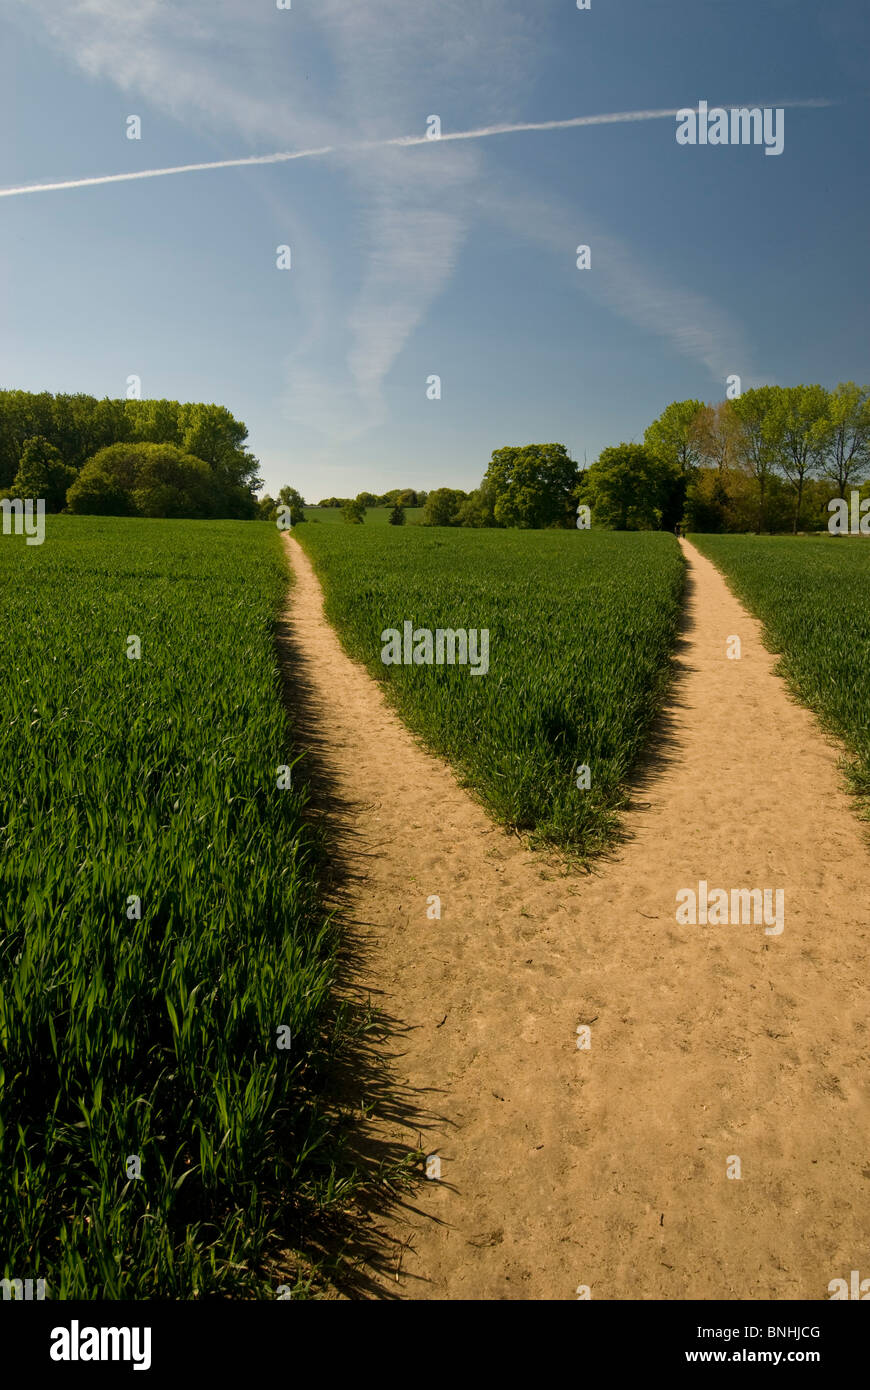 Two paths through Wheat field in  English countryside  near banks of river Orwell, close to Pin Mill, Suffolk. - Stock Image